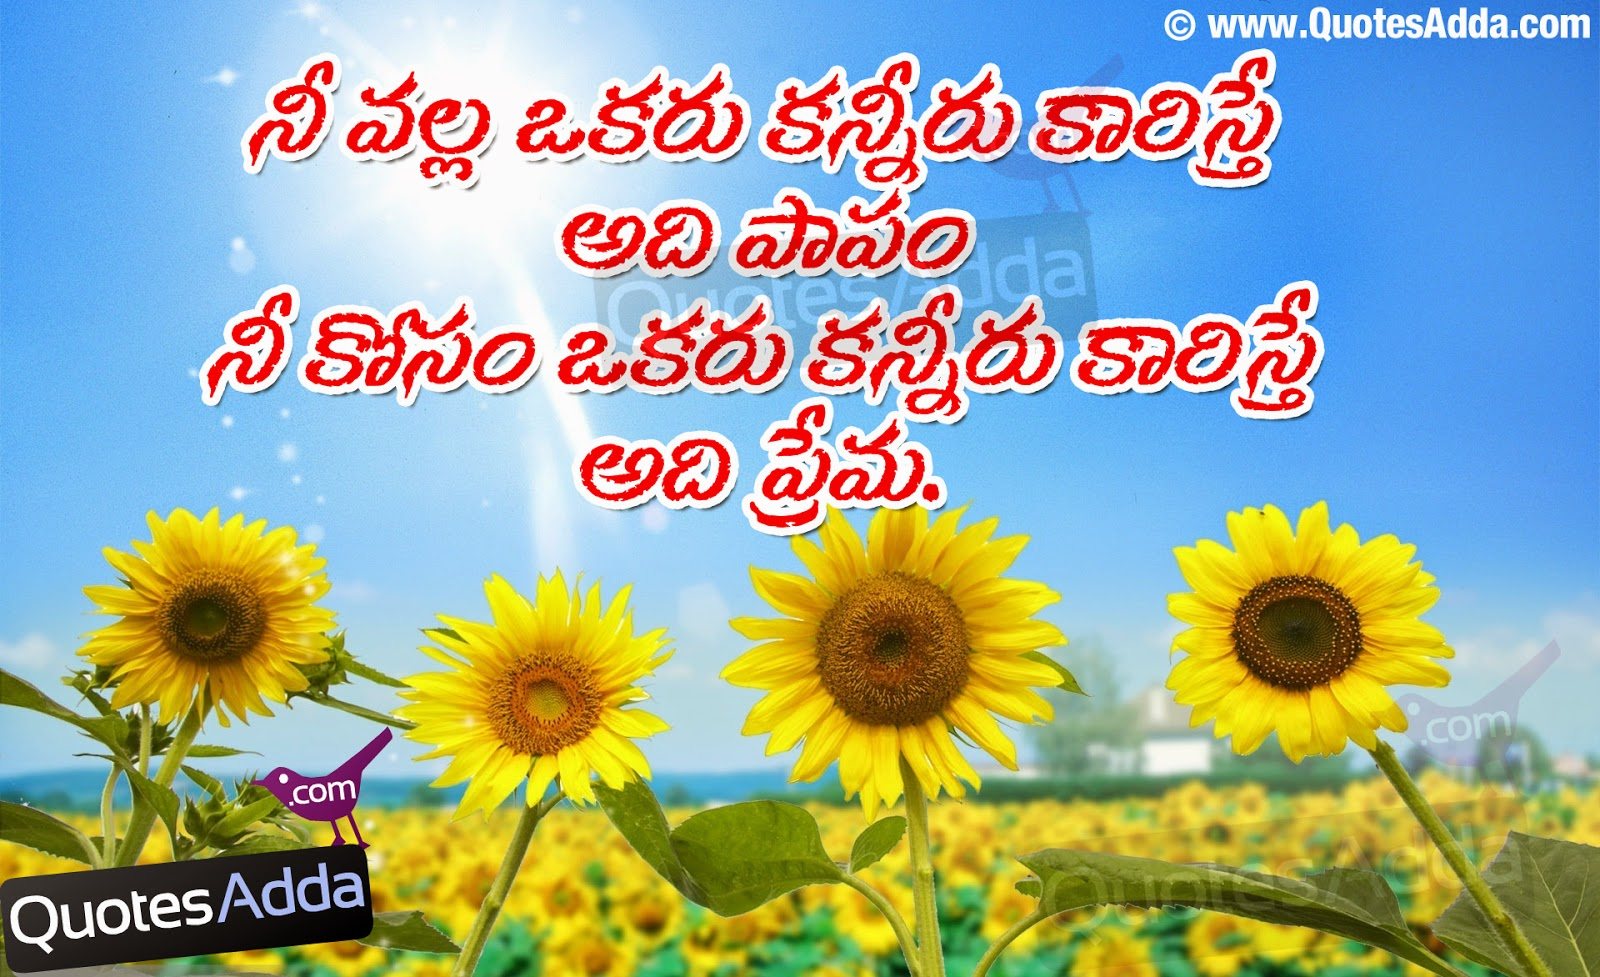 Sad Quotes About Love In Telugu : Telugu+Life+Love+Sad+Meaning+quotations++-+JUL04+-+QuotesAdda.com.jpg